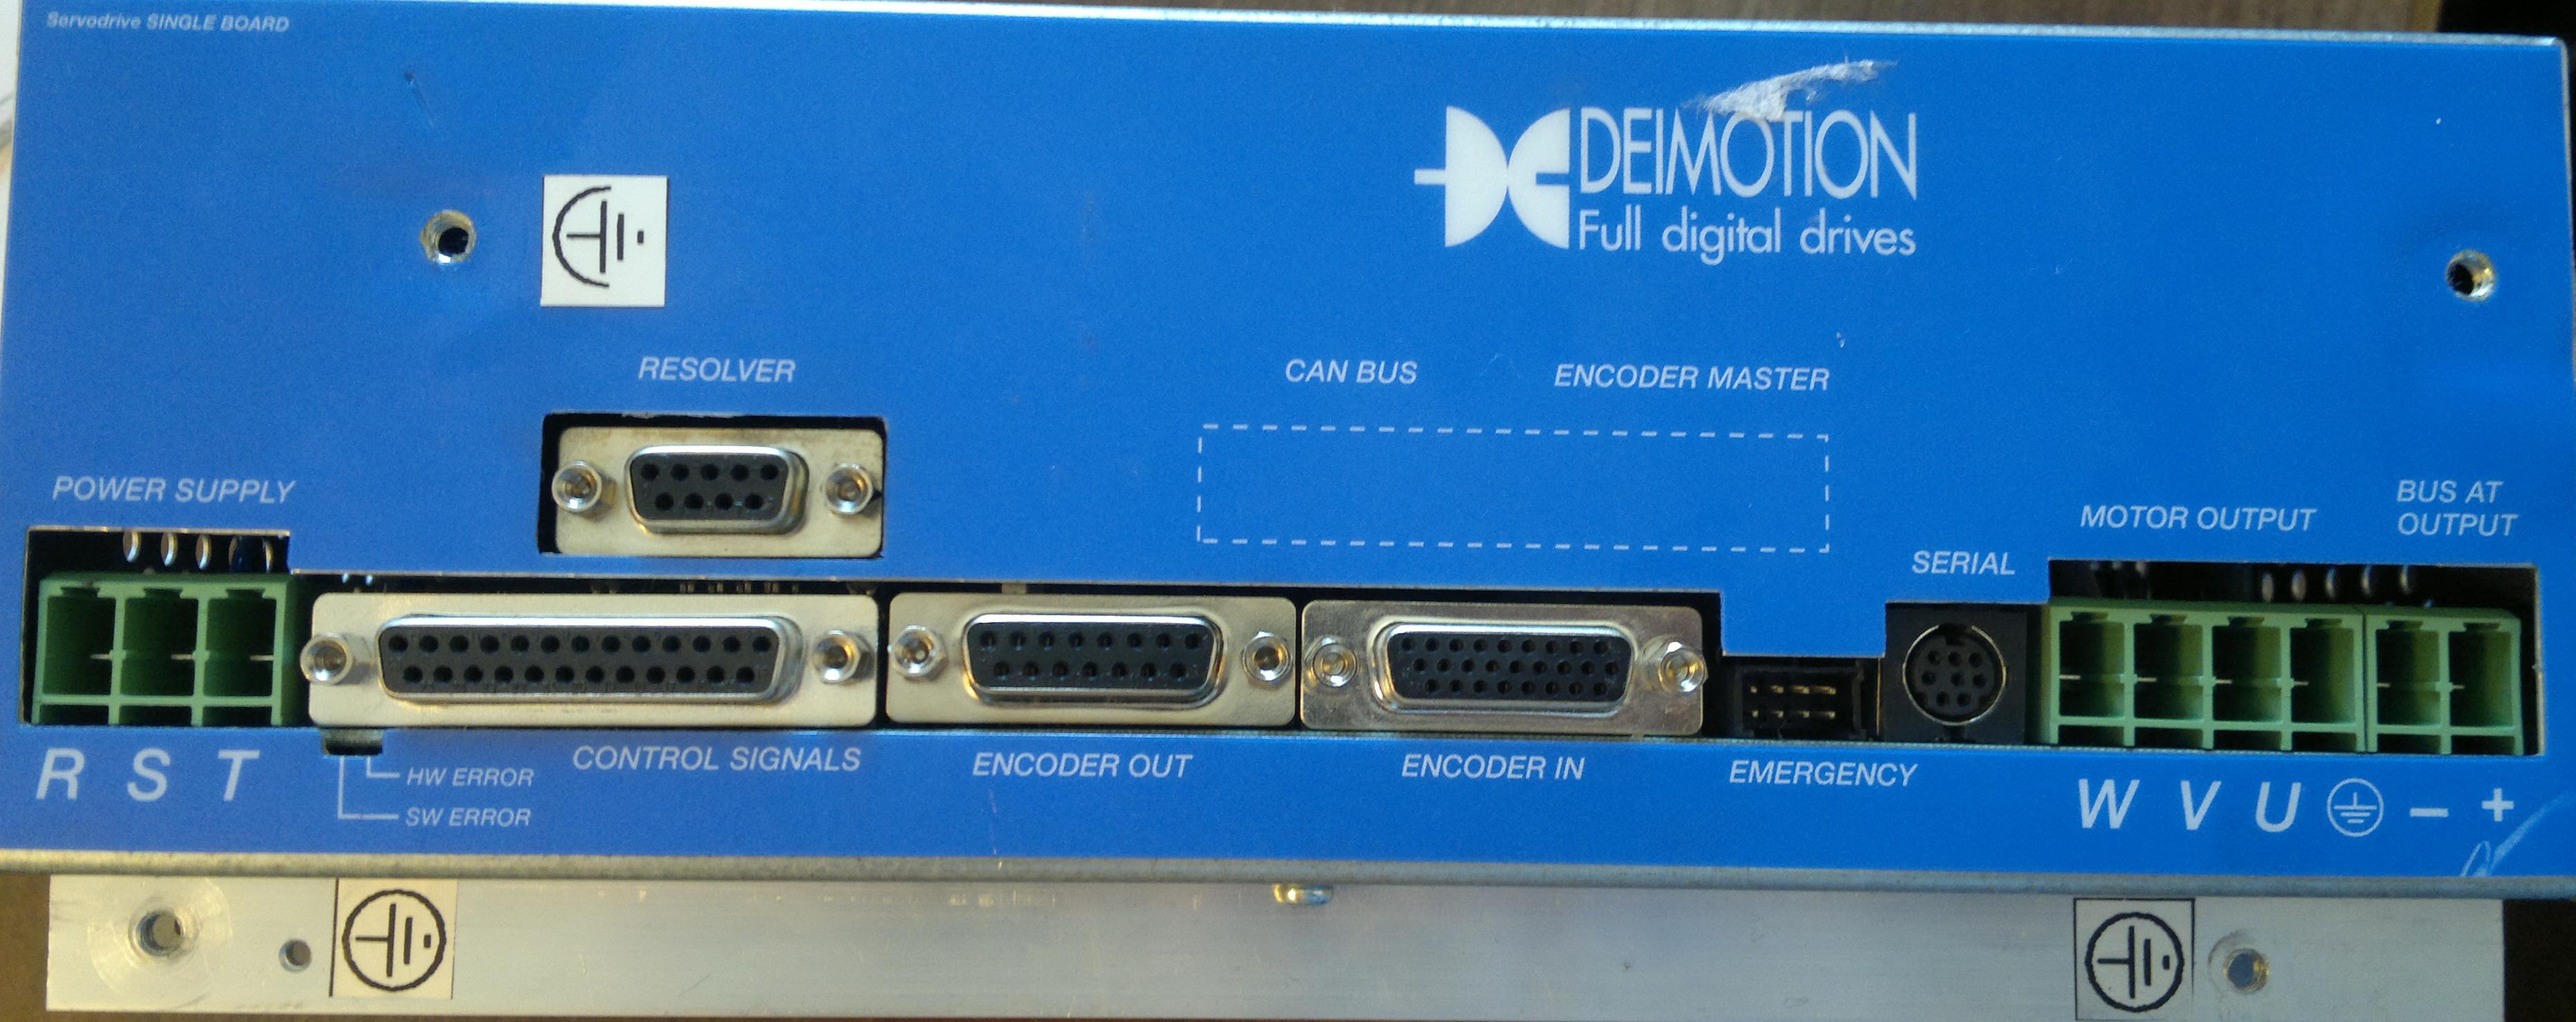 deimotion_full_digital_drives2.jpg